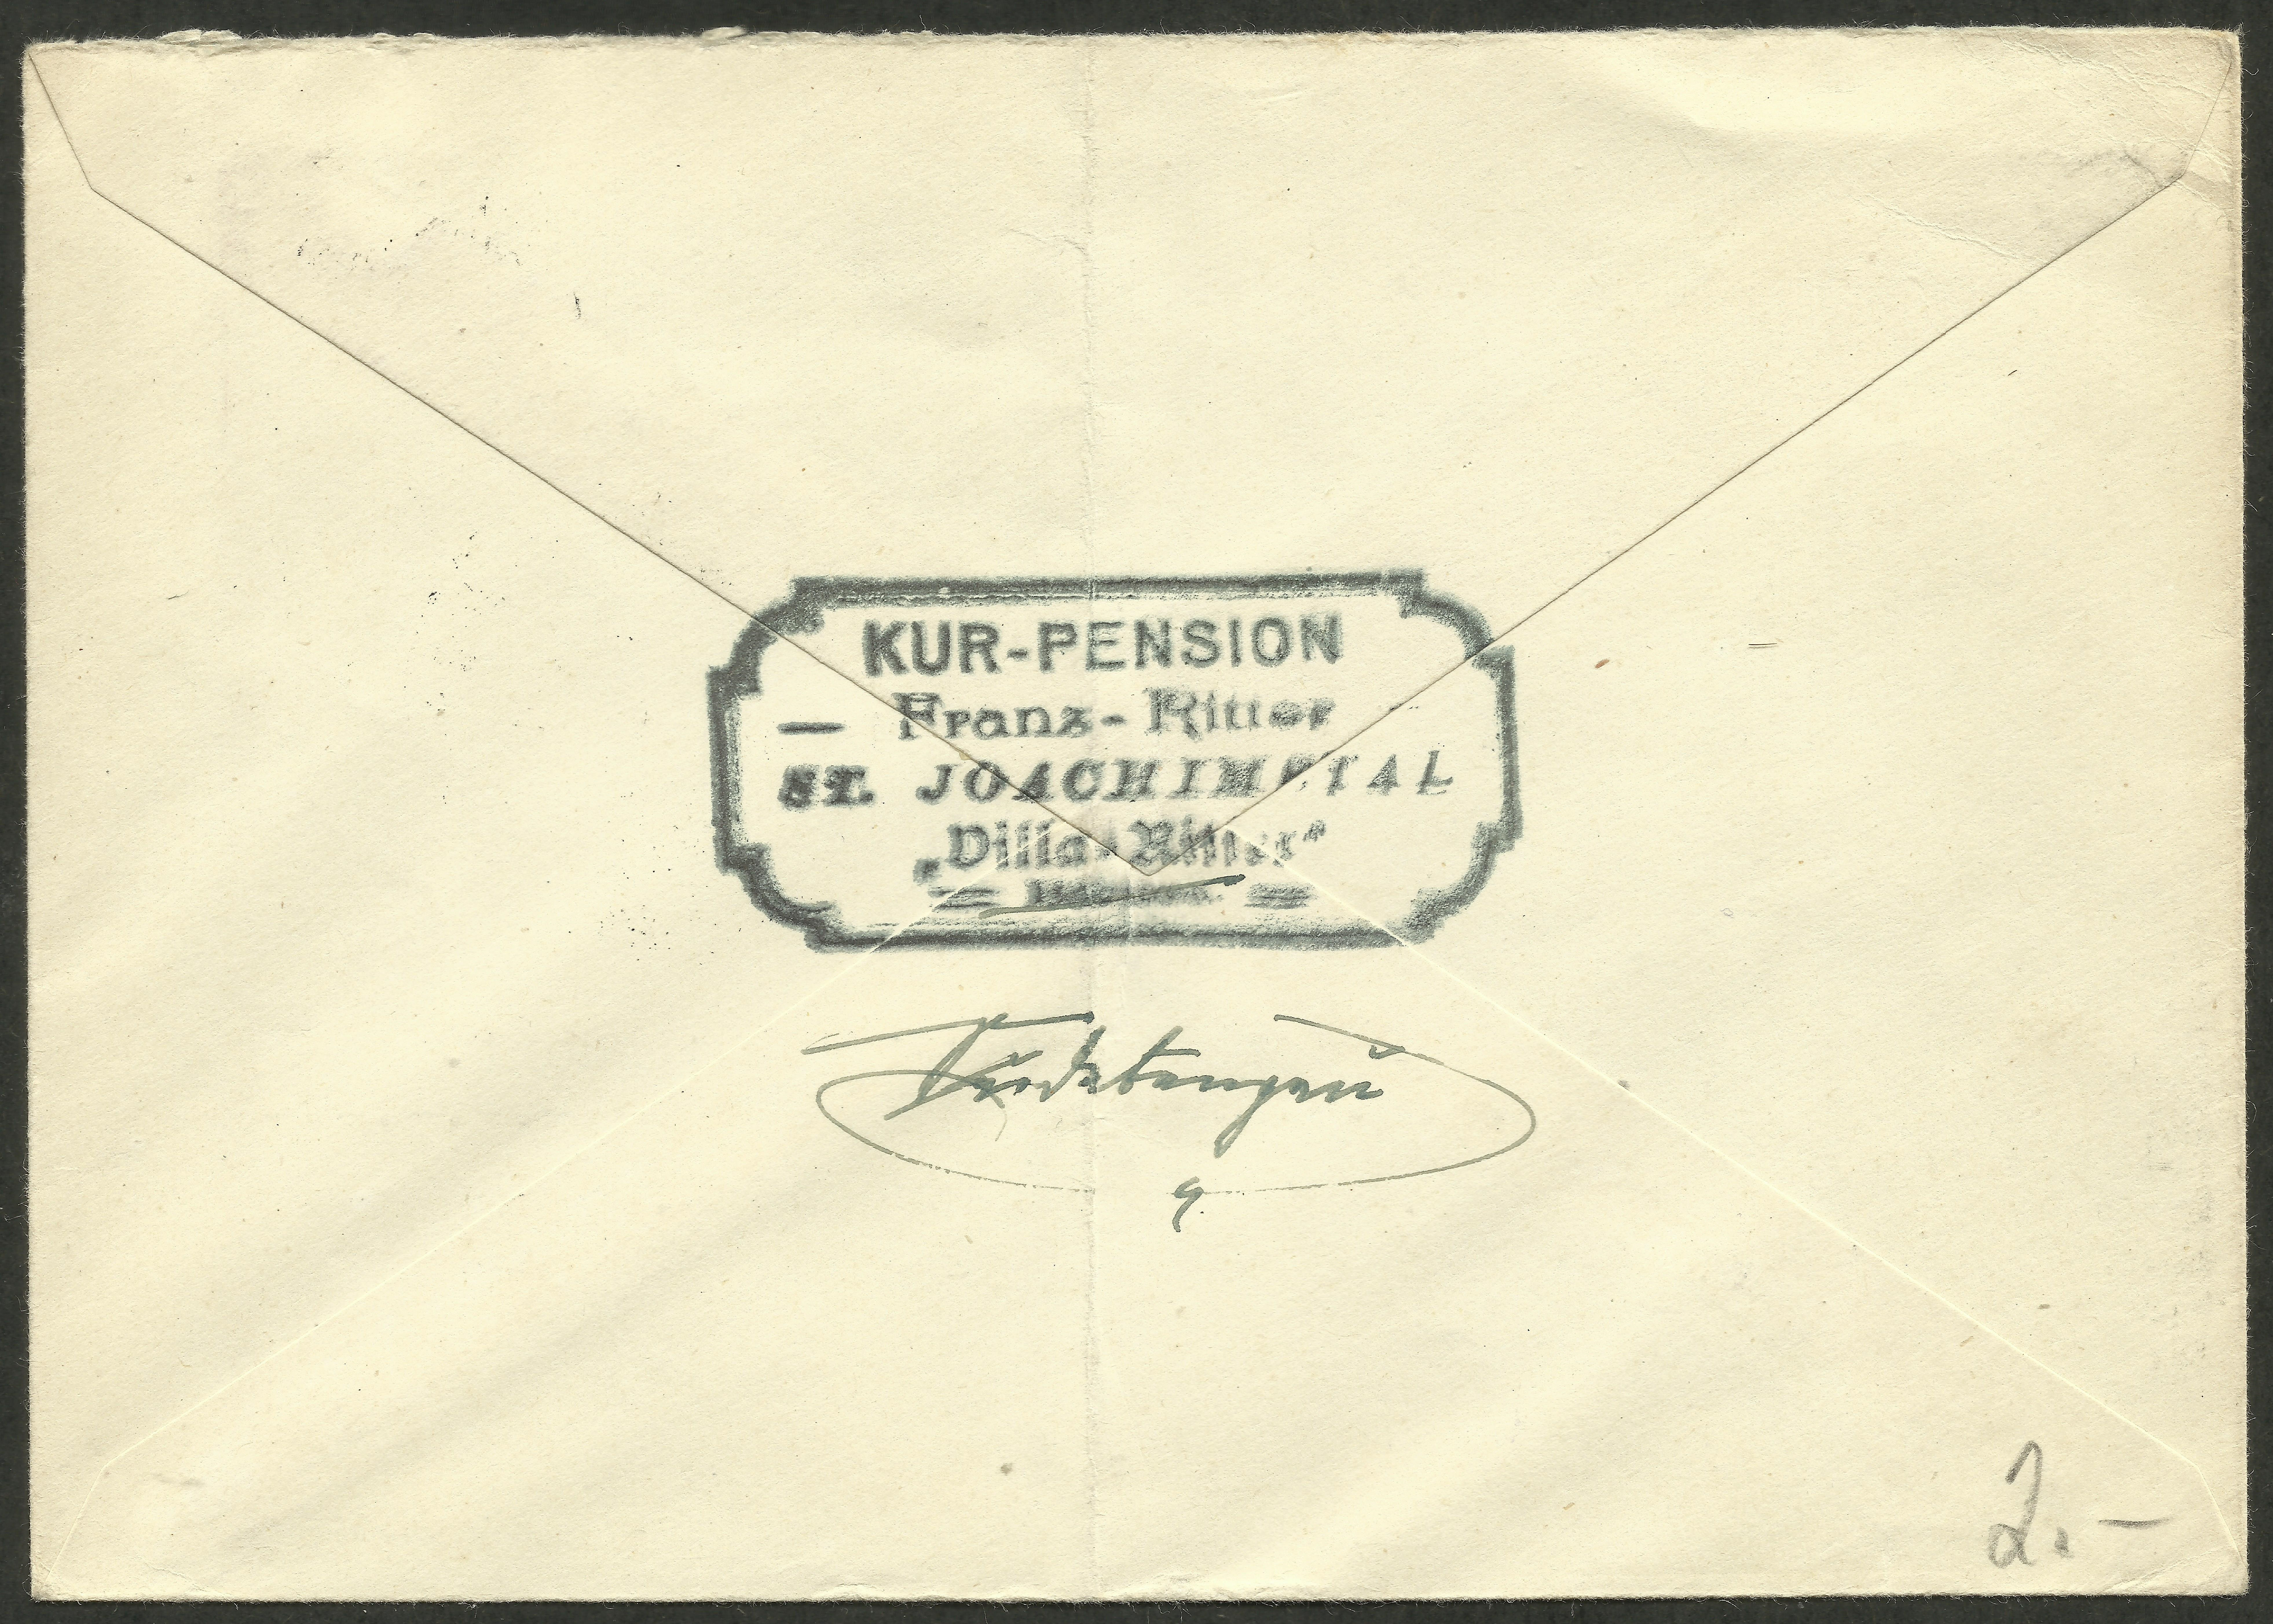 Reverse side of cover bearing Germany Scott #513 posted in Joachimsthal, Bohemia.